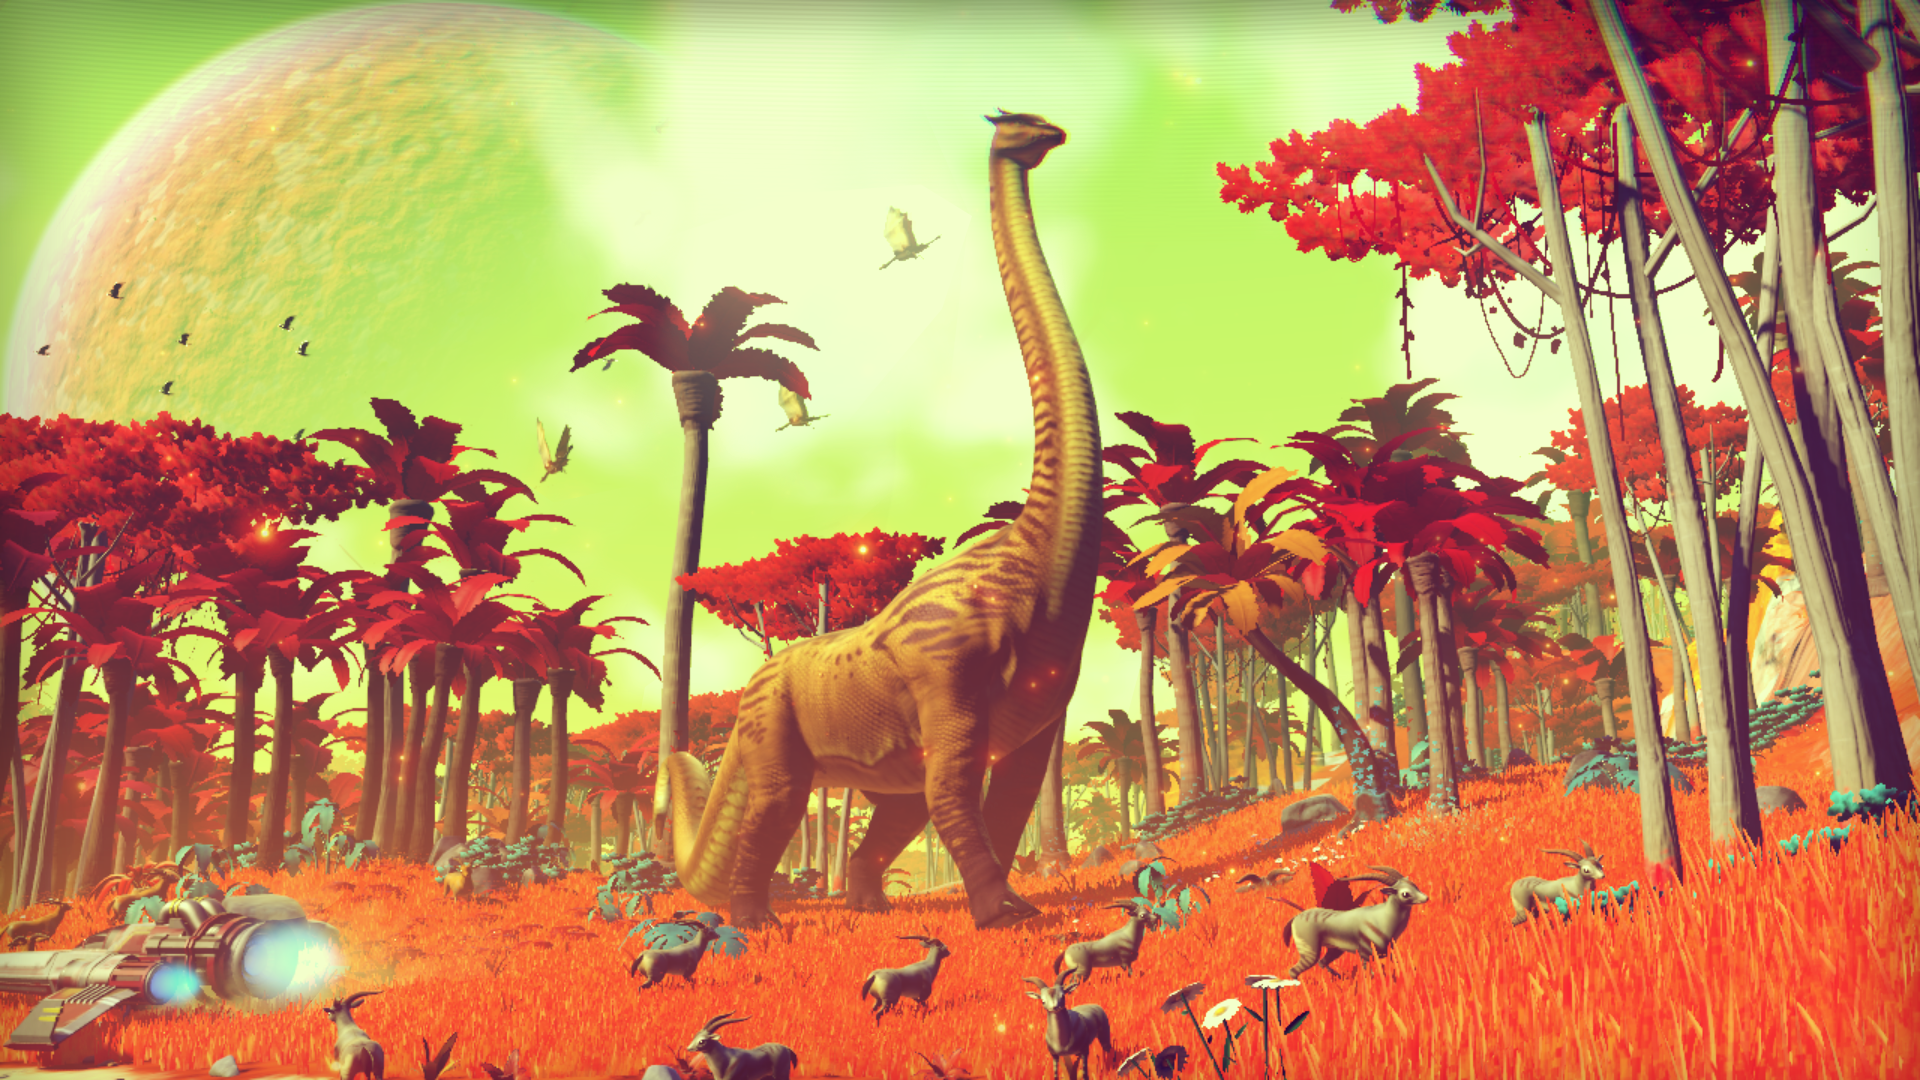 No Man's Sky. Upcoming Sci-Fi Games of 2016